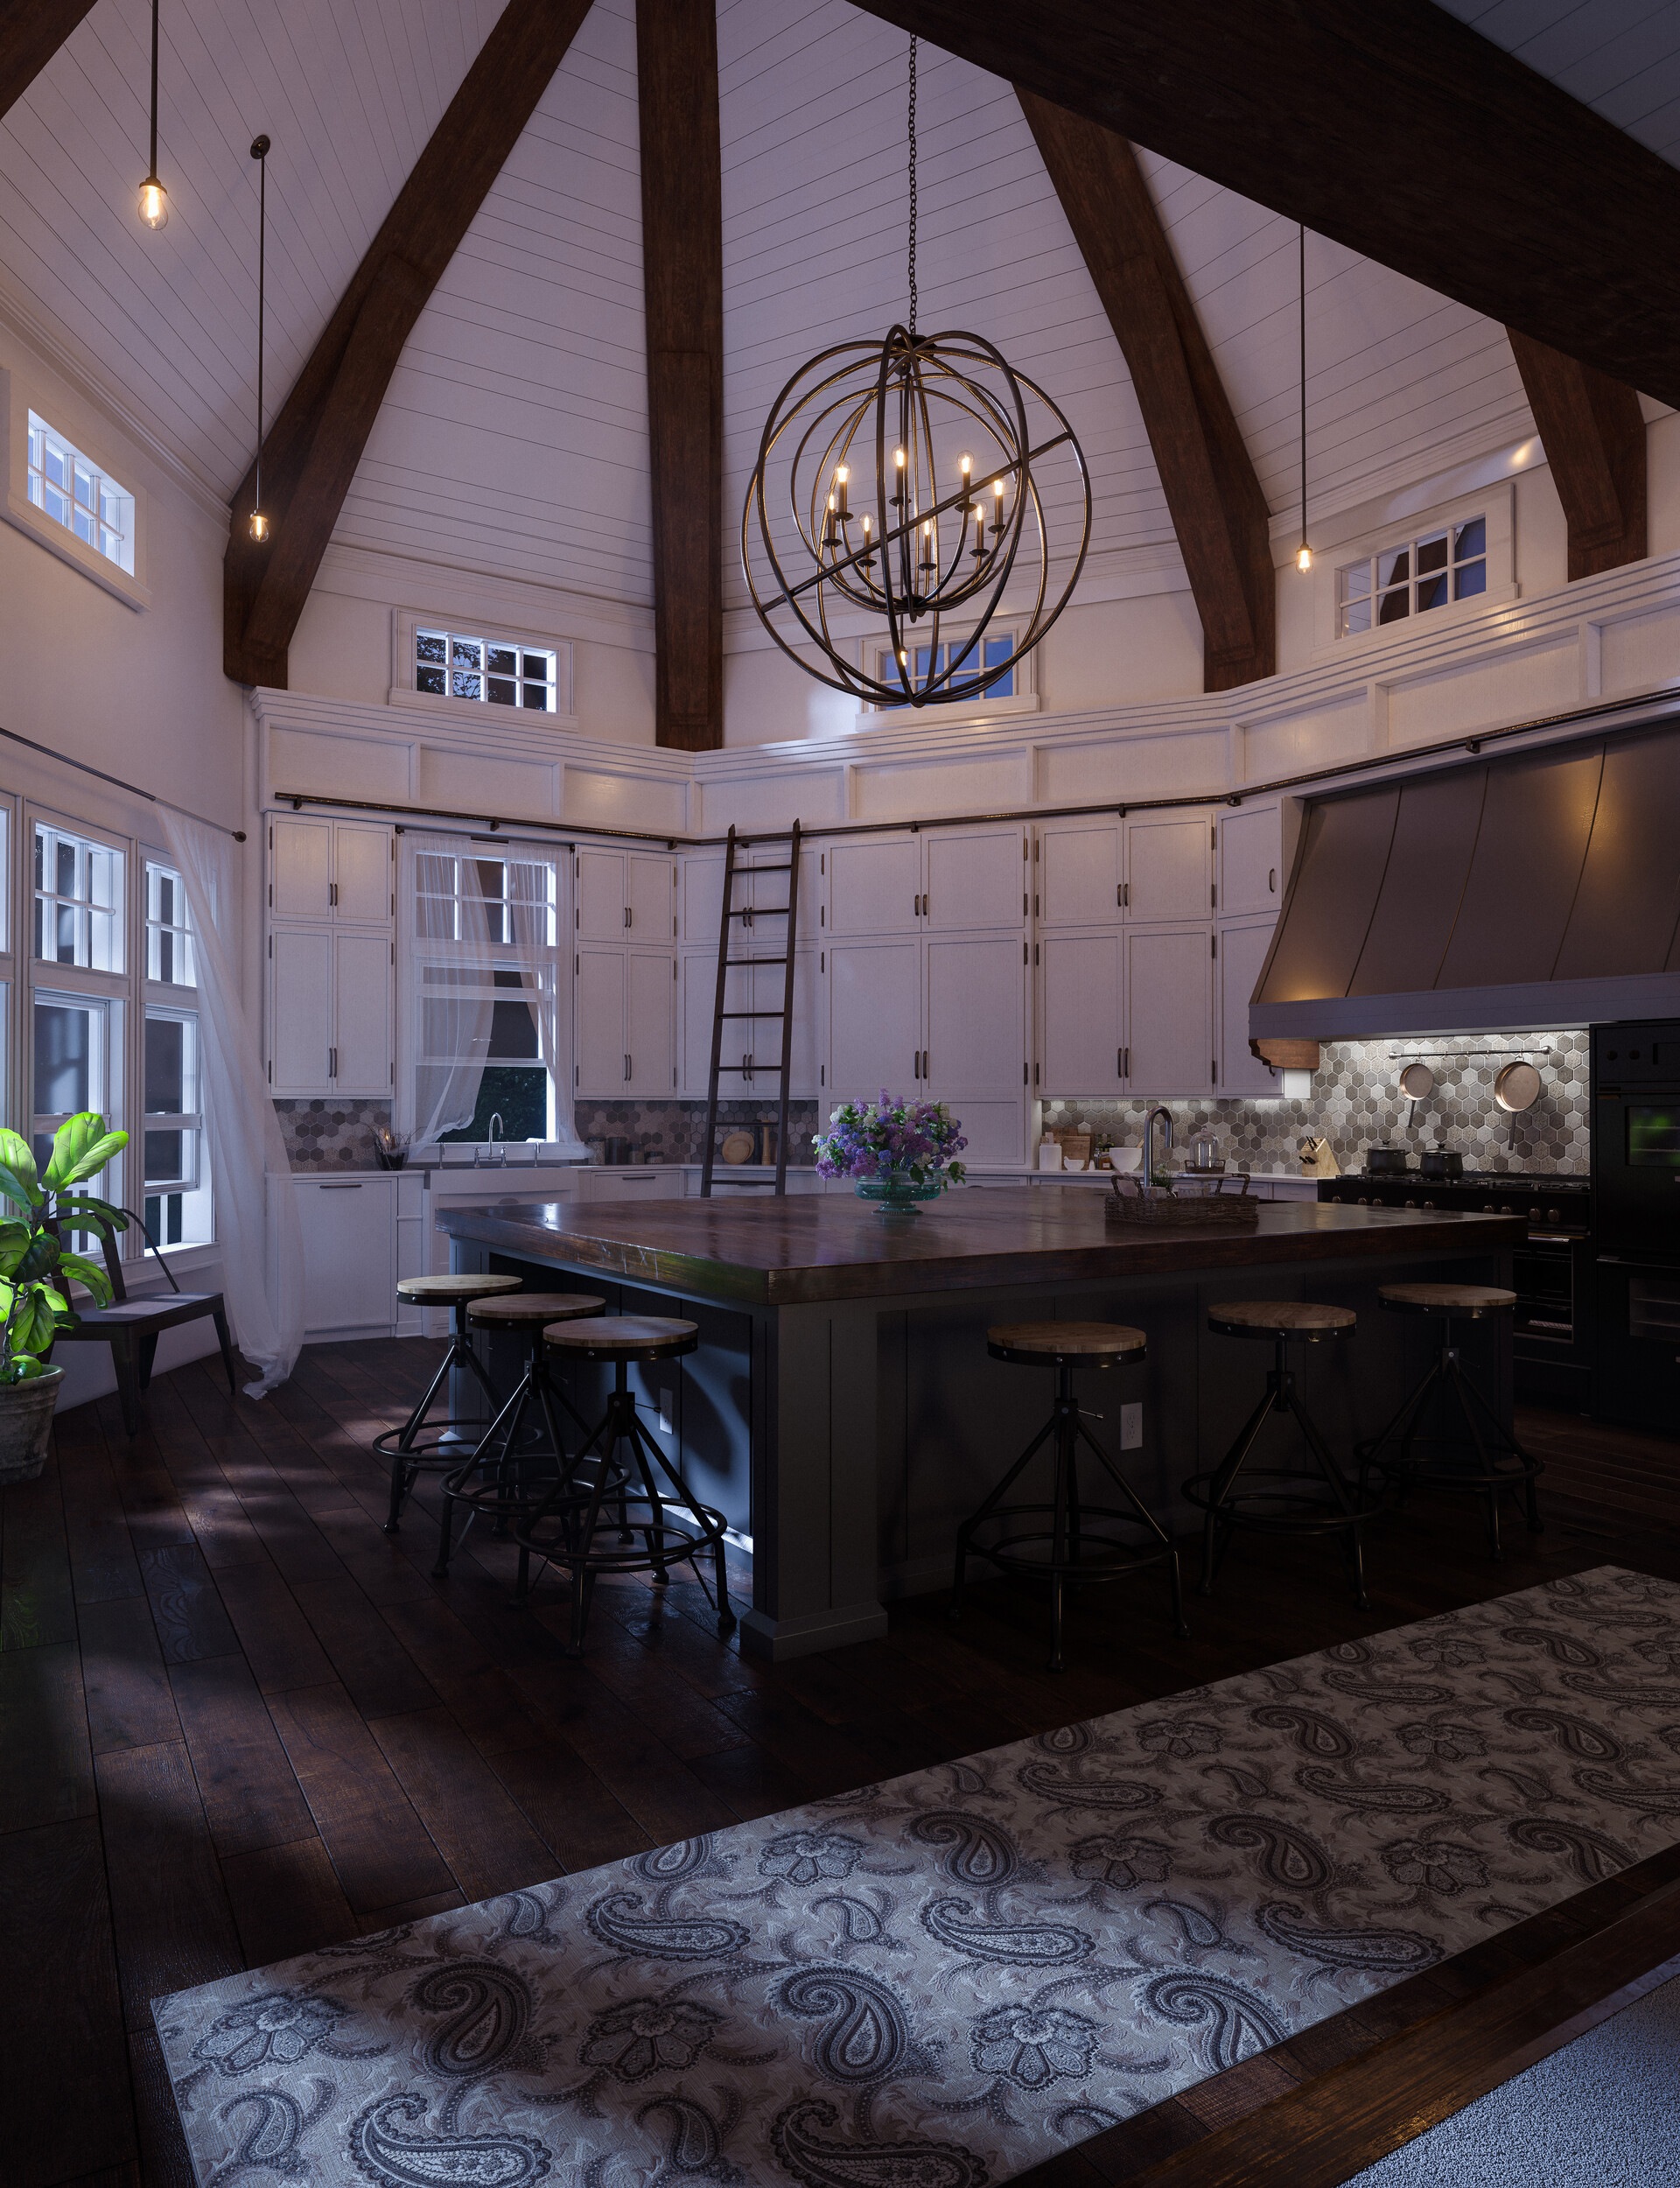 Spencer Fitch Rustic Lake House Kitchen